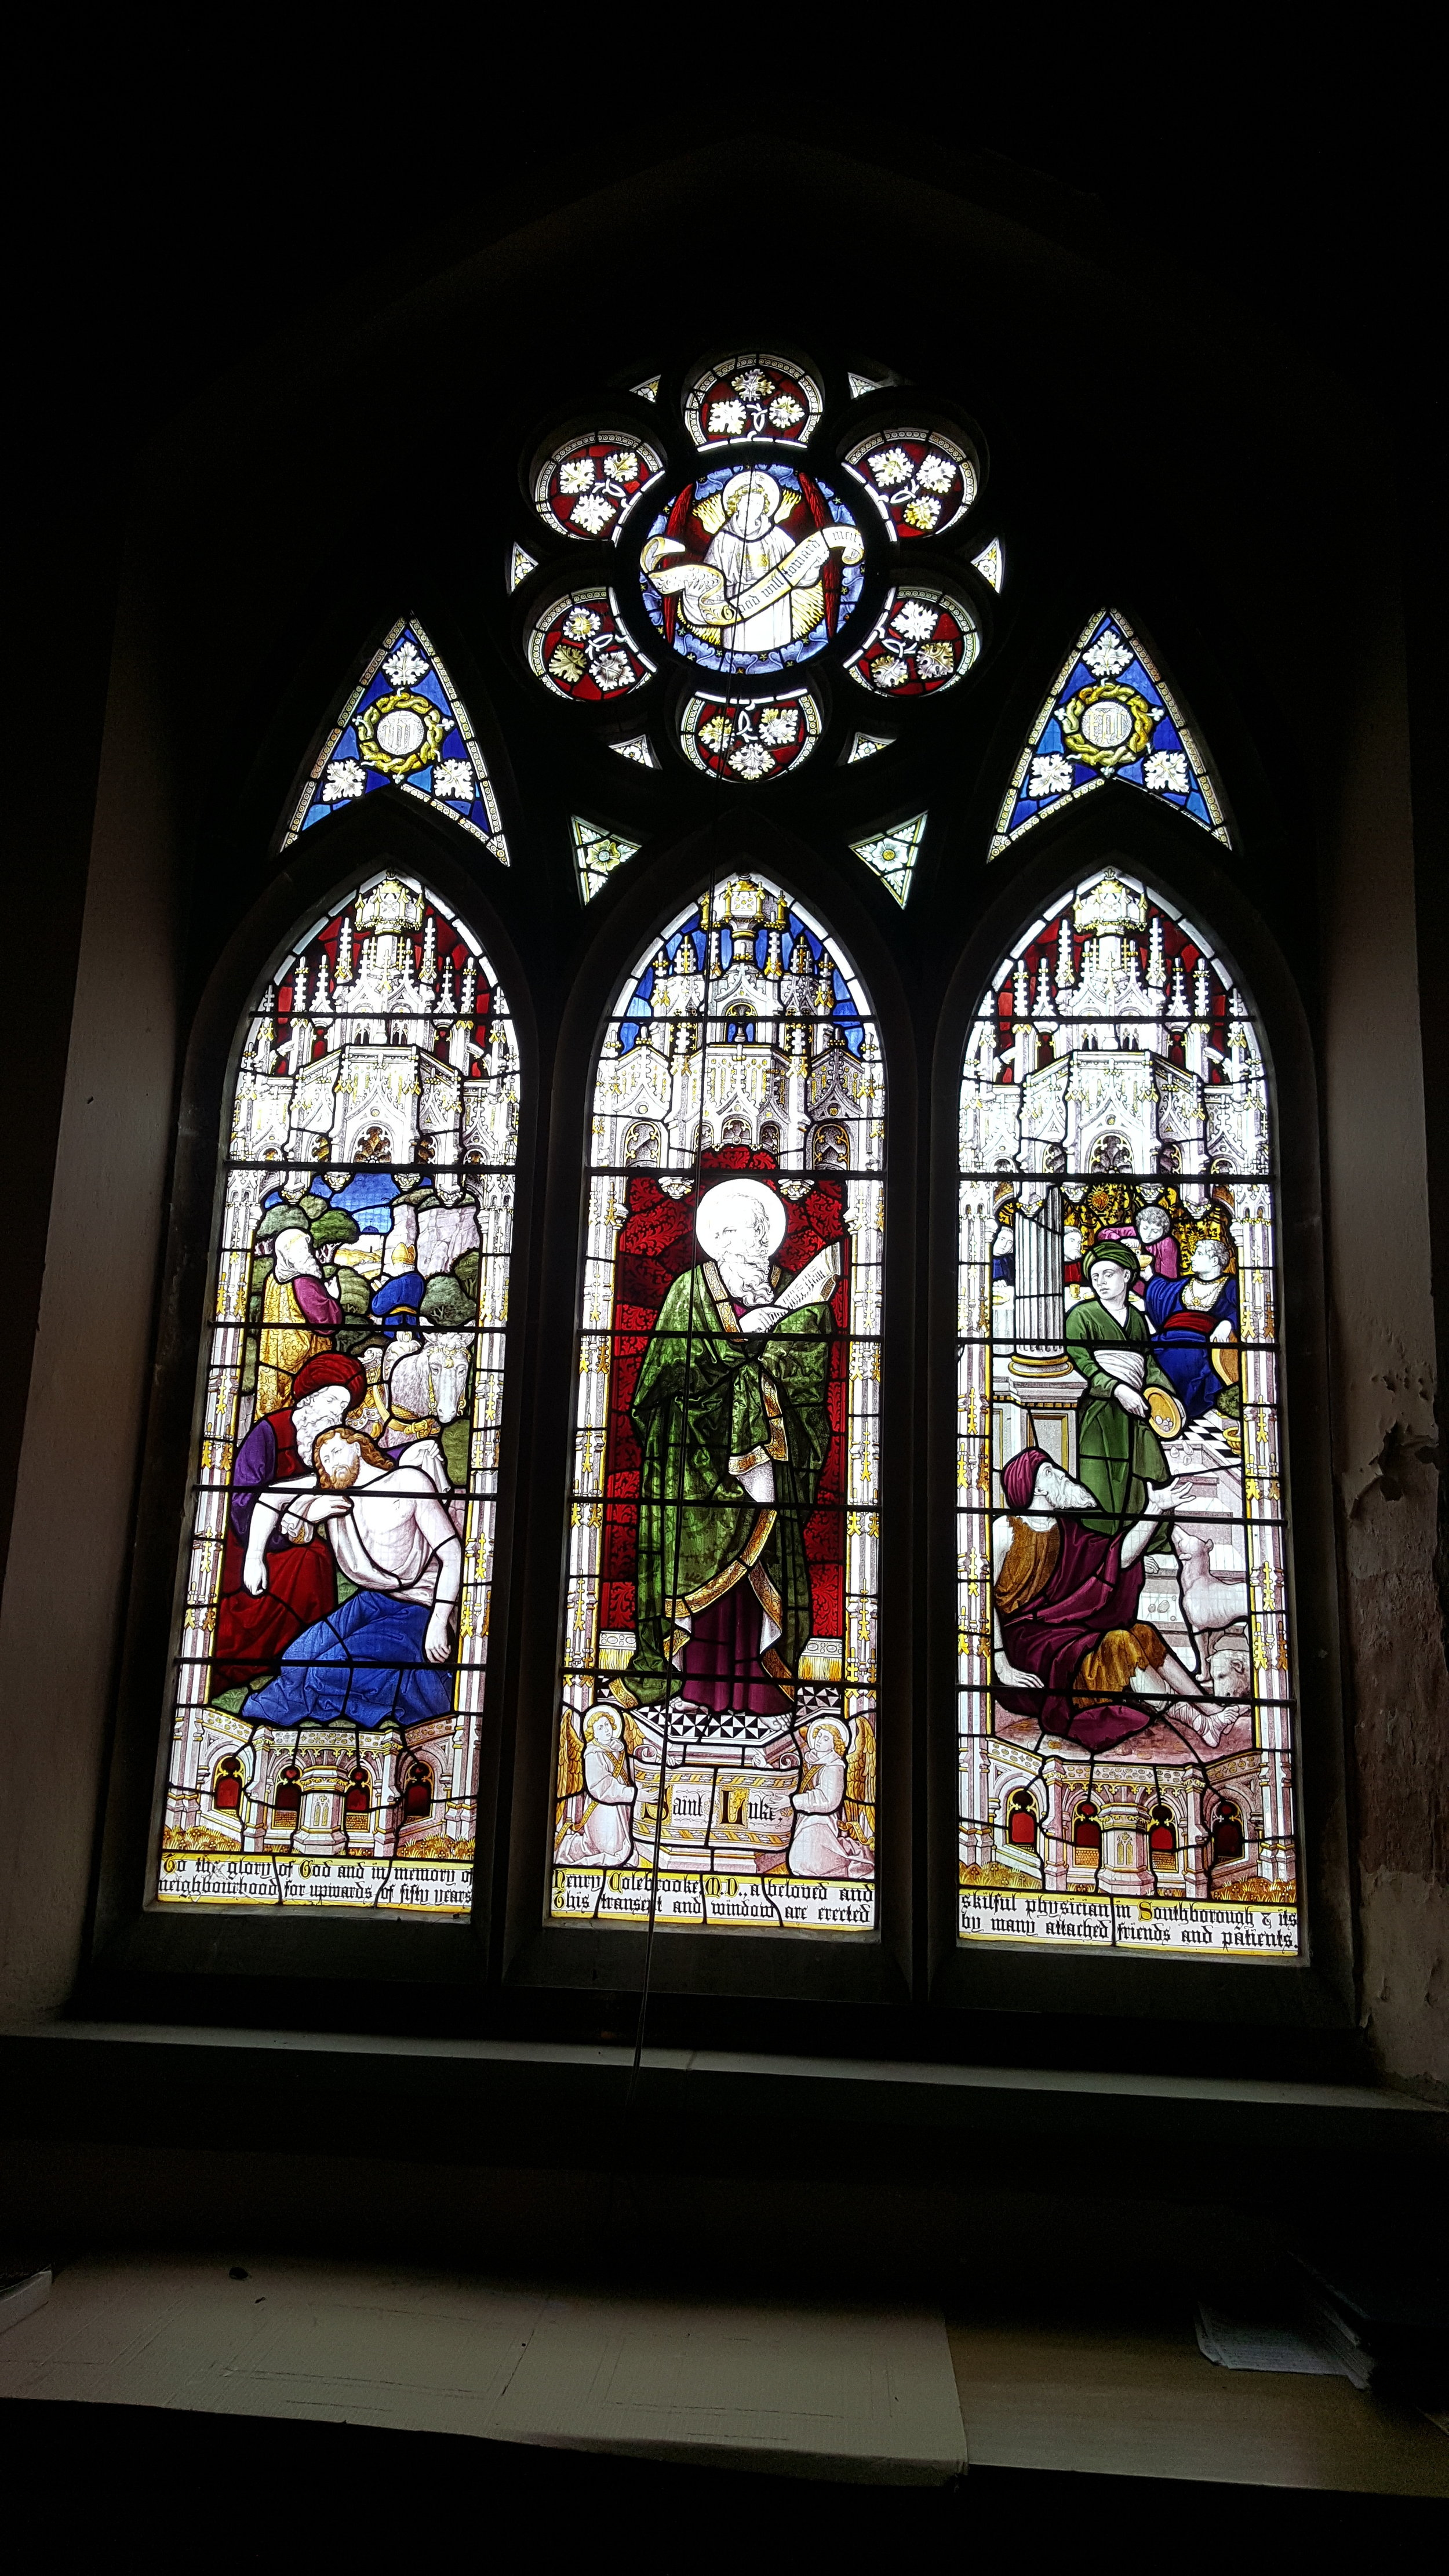 The window in the Colebrooke chapel, with the walls around in need of repair and redecoration